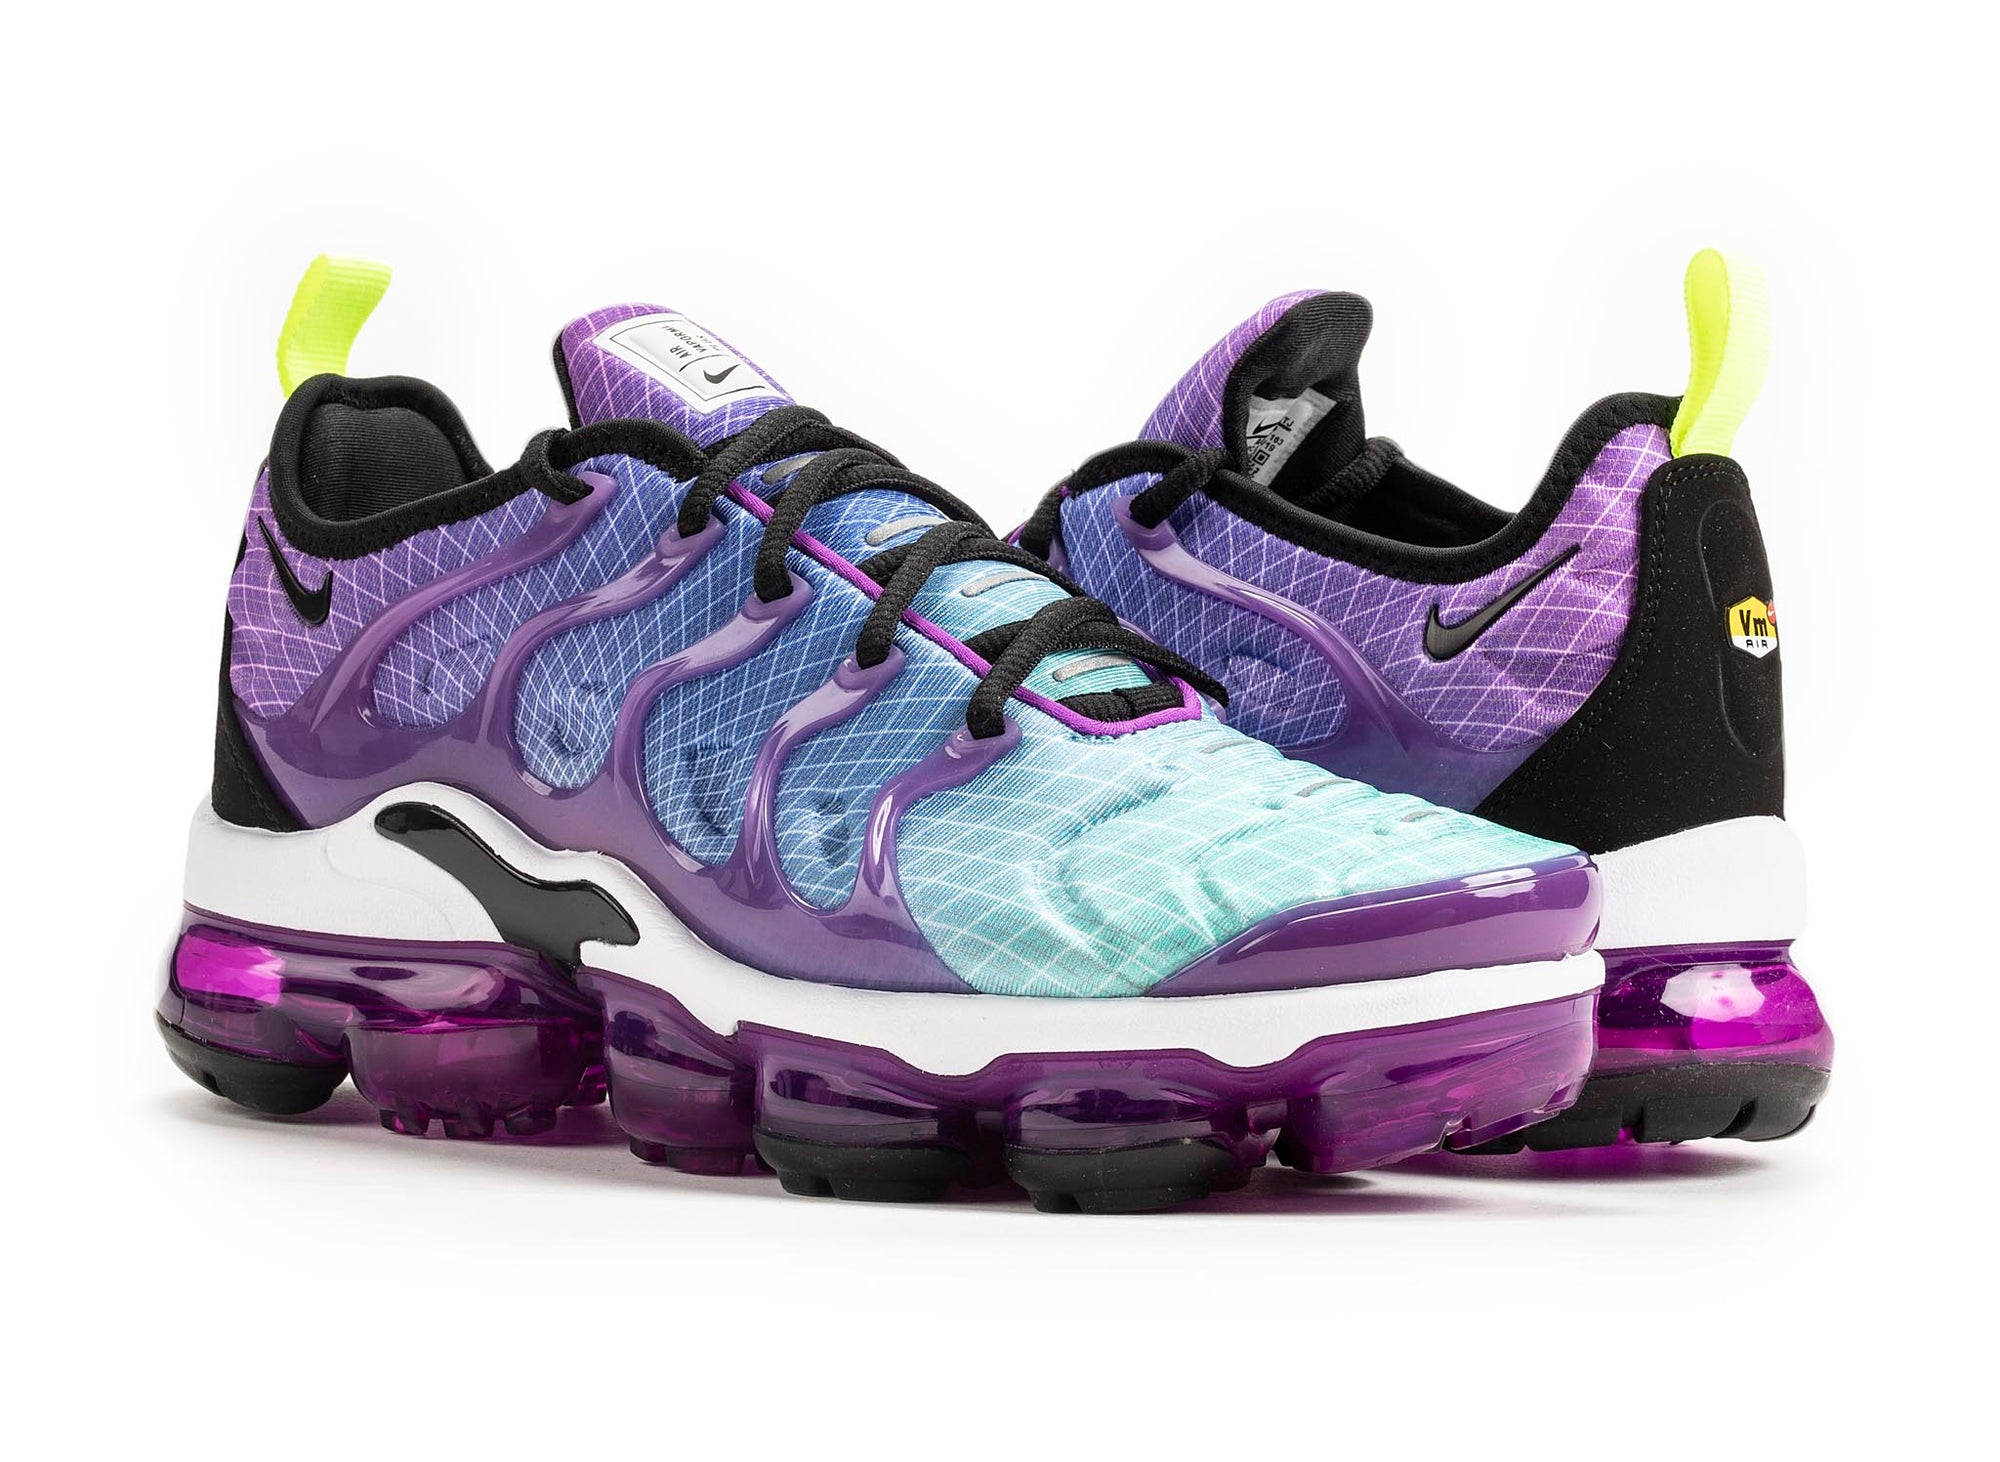 premium selection 40e80 f3da1 Women's Nike Air Vapormax Plus 'Hyper Violet'